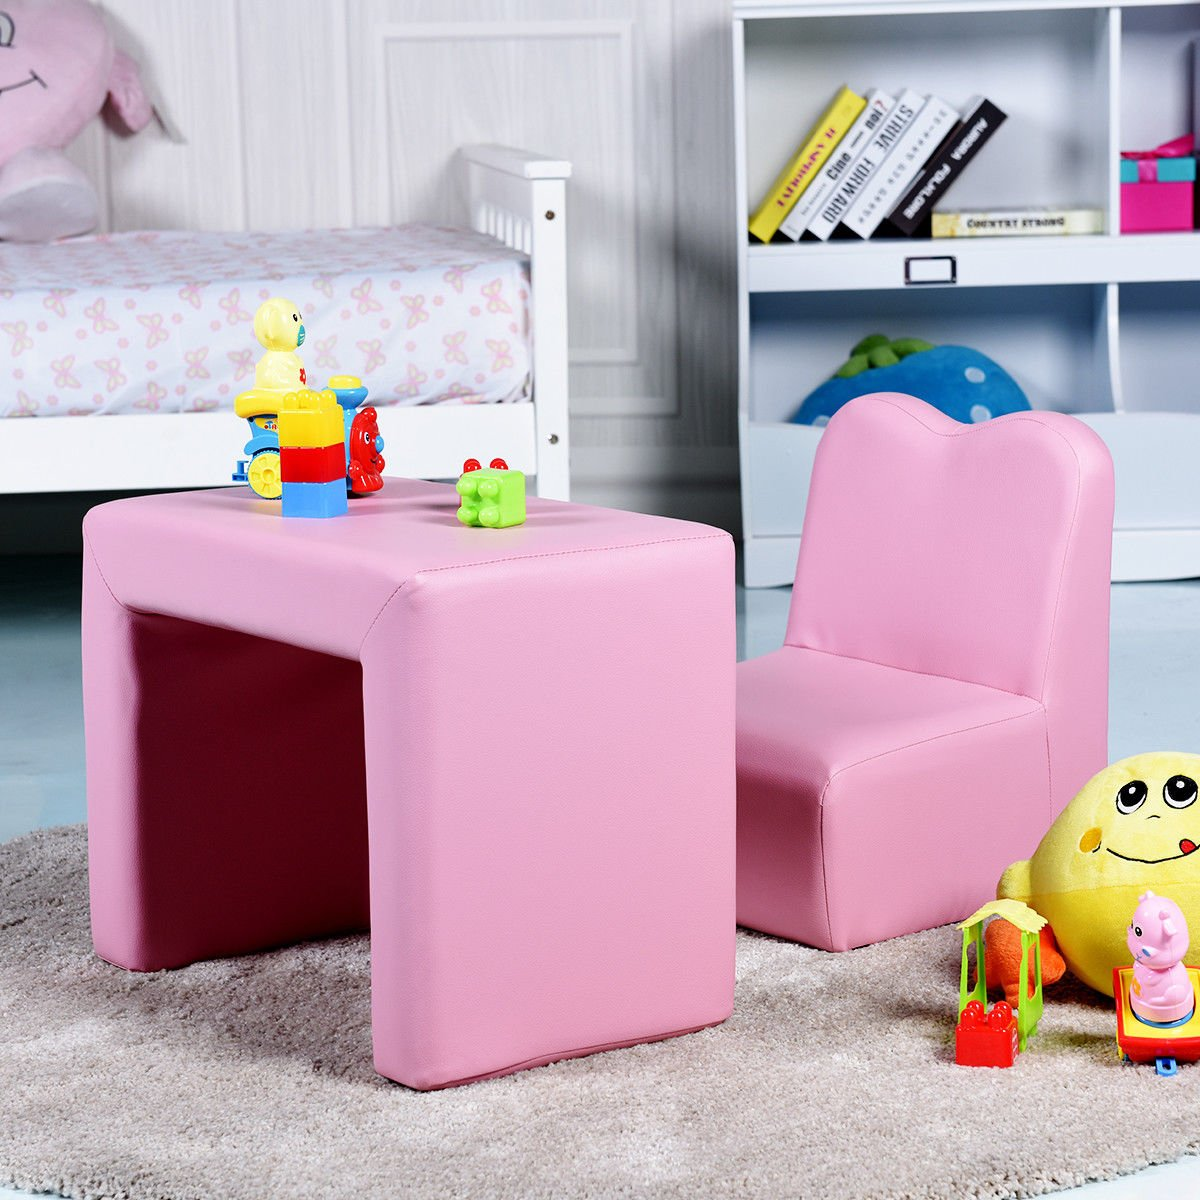 Costzon Kids Sofa, 2-IN-1 Multi-Functional Kids Table & Chair Set, Sturdy Wood Construction, Armrest Chair for Boys & Girls (Pink) by Costzon